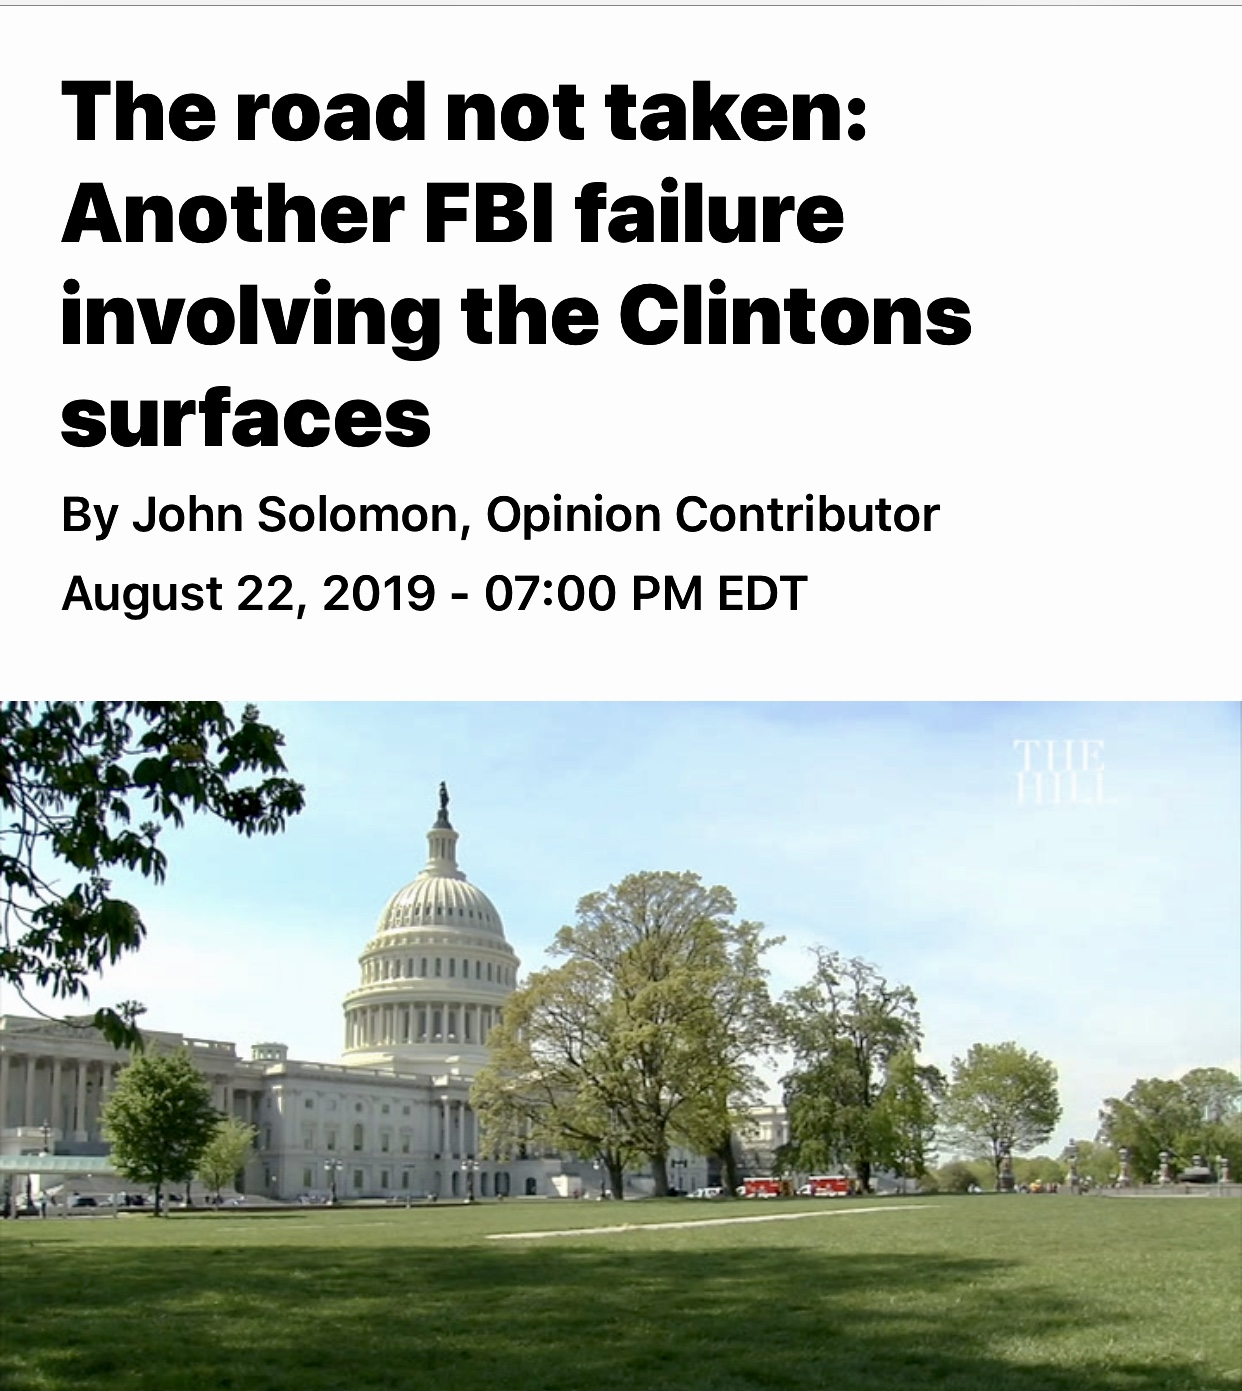 Another FBI failure involving the Clintons surfaces   TheHill